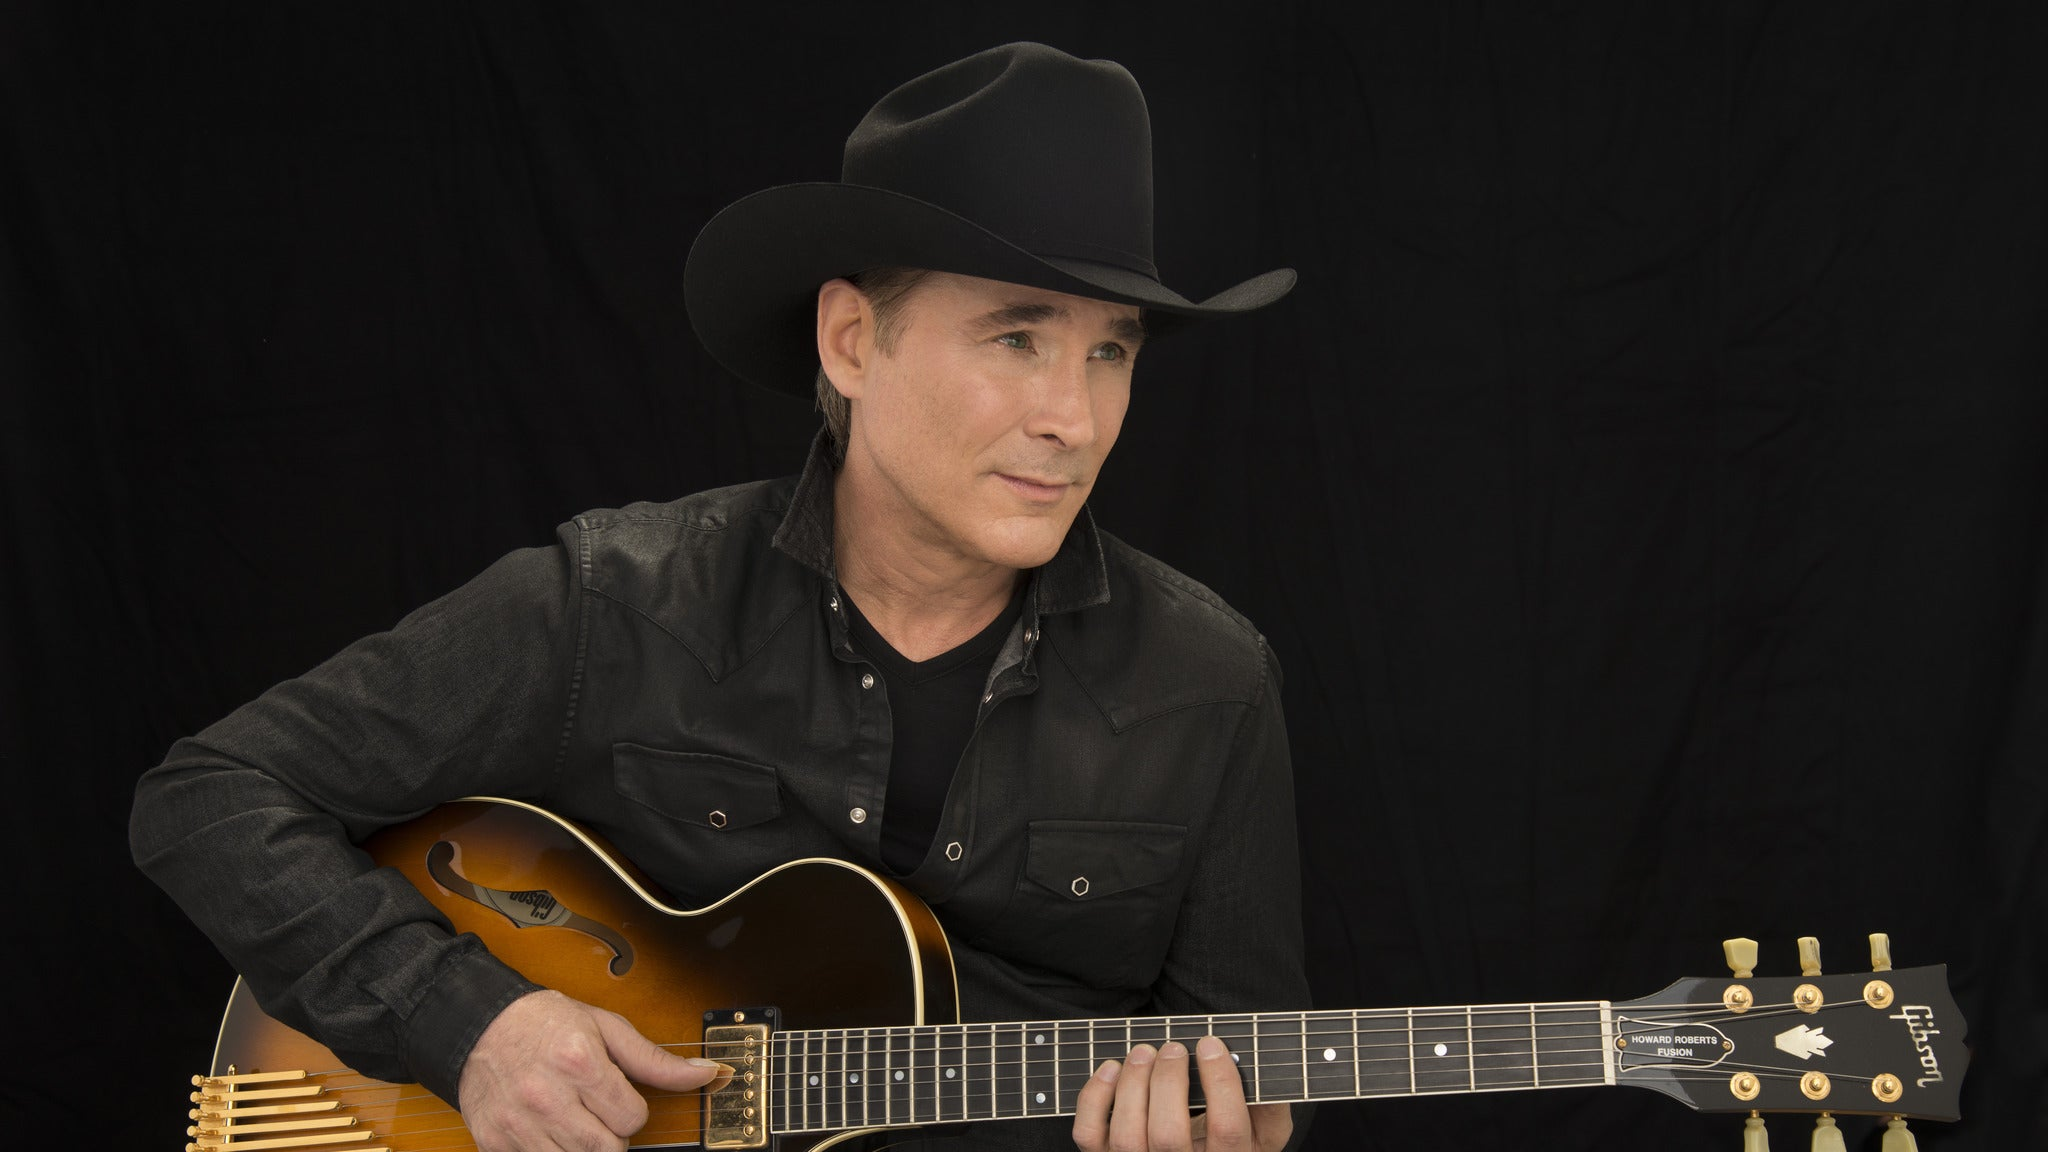 Clint Black presale password for show tickets in Tampa, FL (Seminole Hard Rock Tampa Event Center)